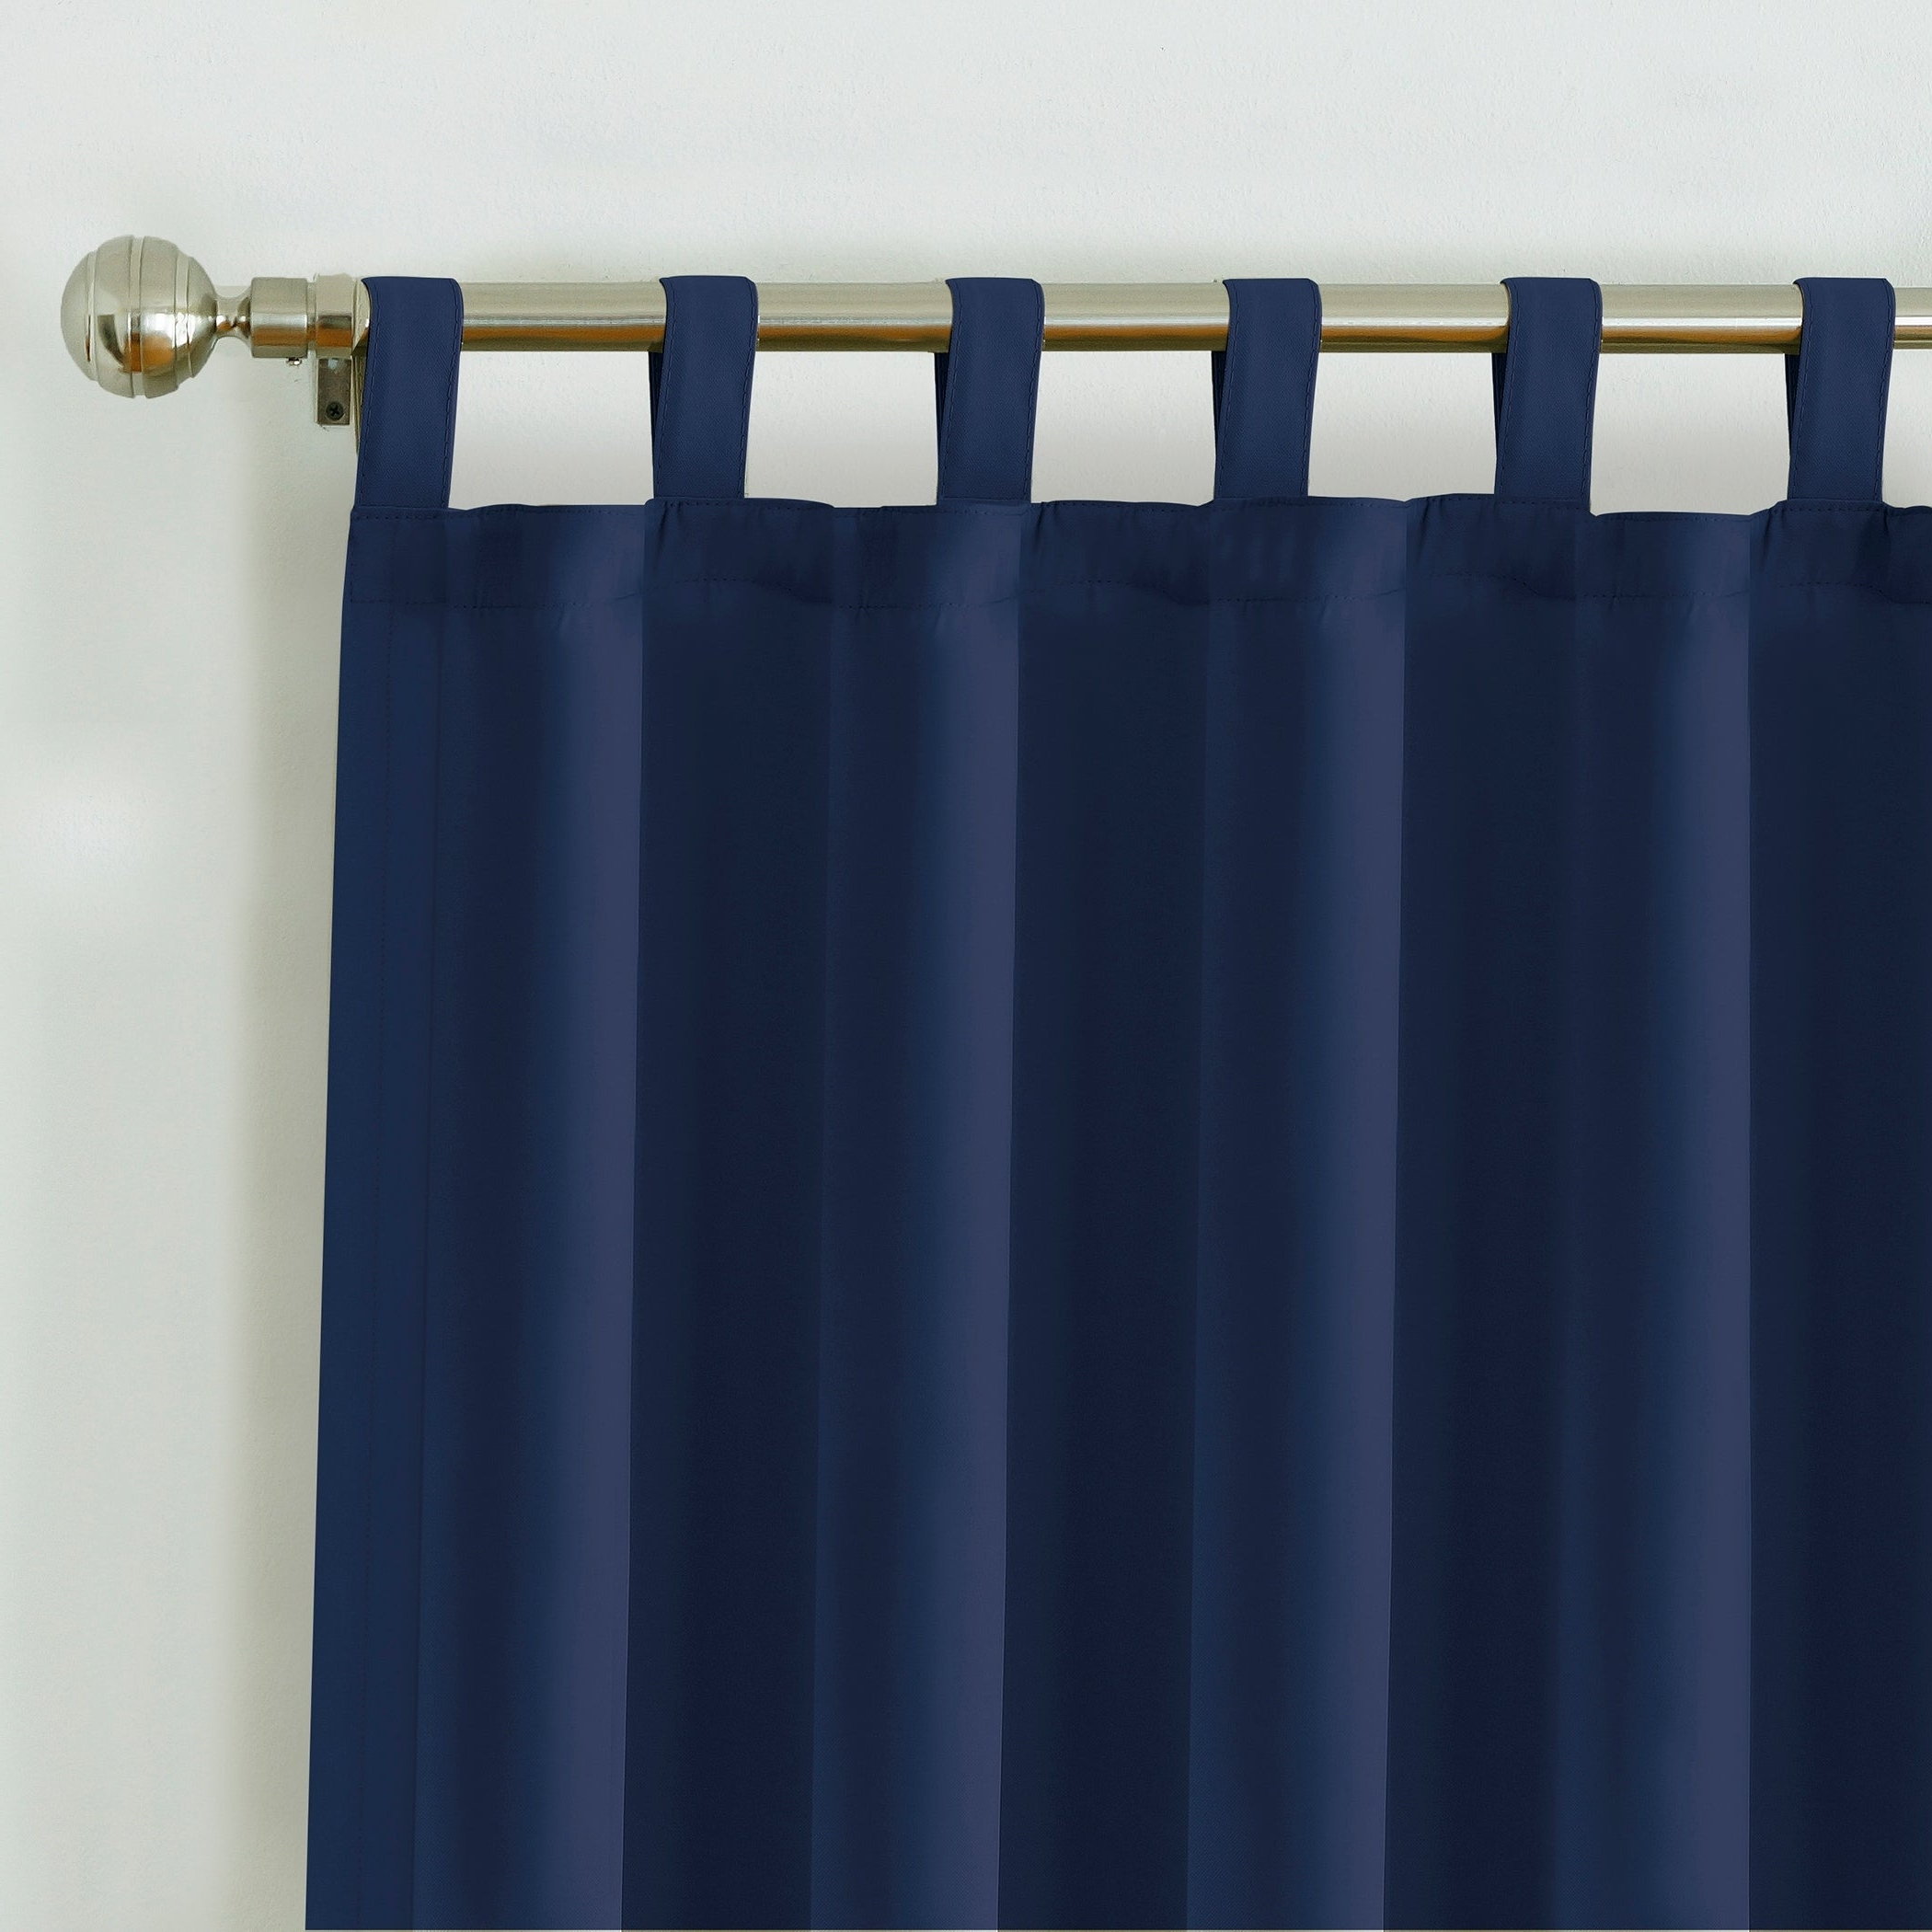 Matine Indoor/outdoor Curtain Panels Regarding Most Up To Date Matine Indoor/outdoor Curtain Panel (View 5 of 20)